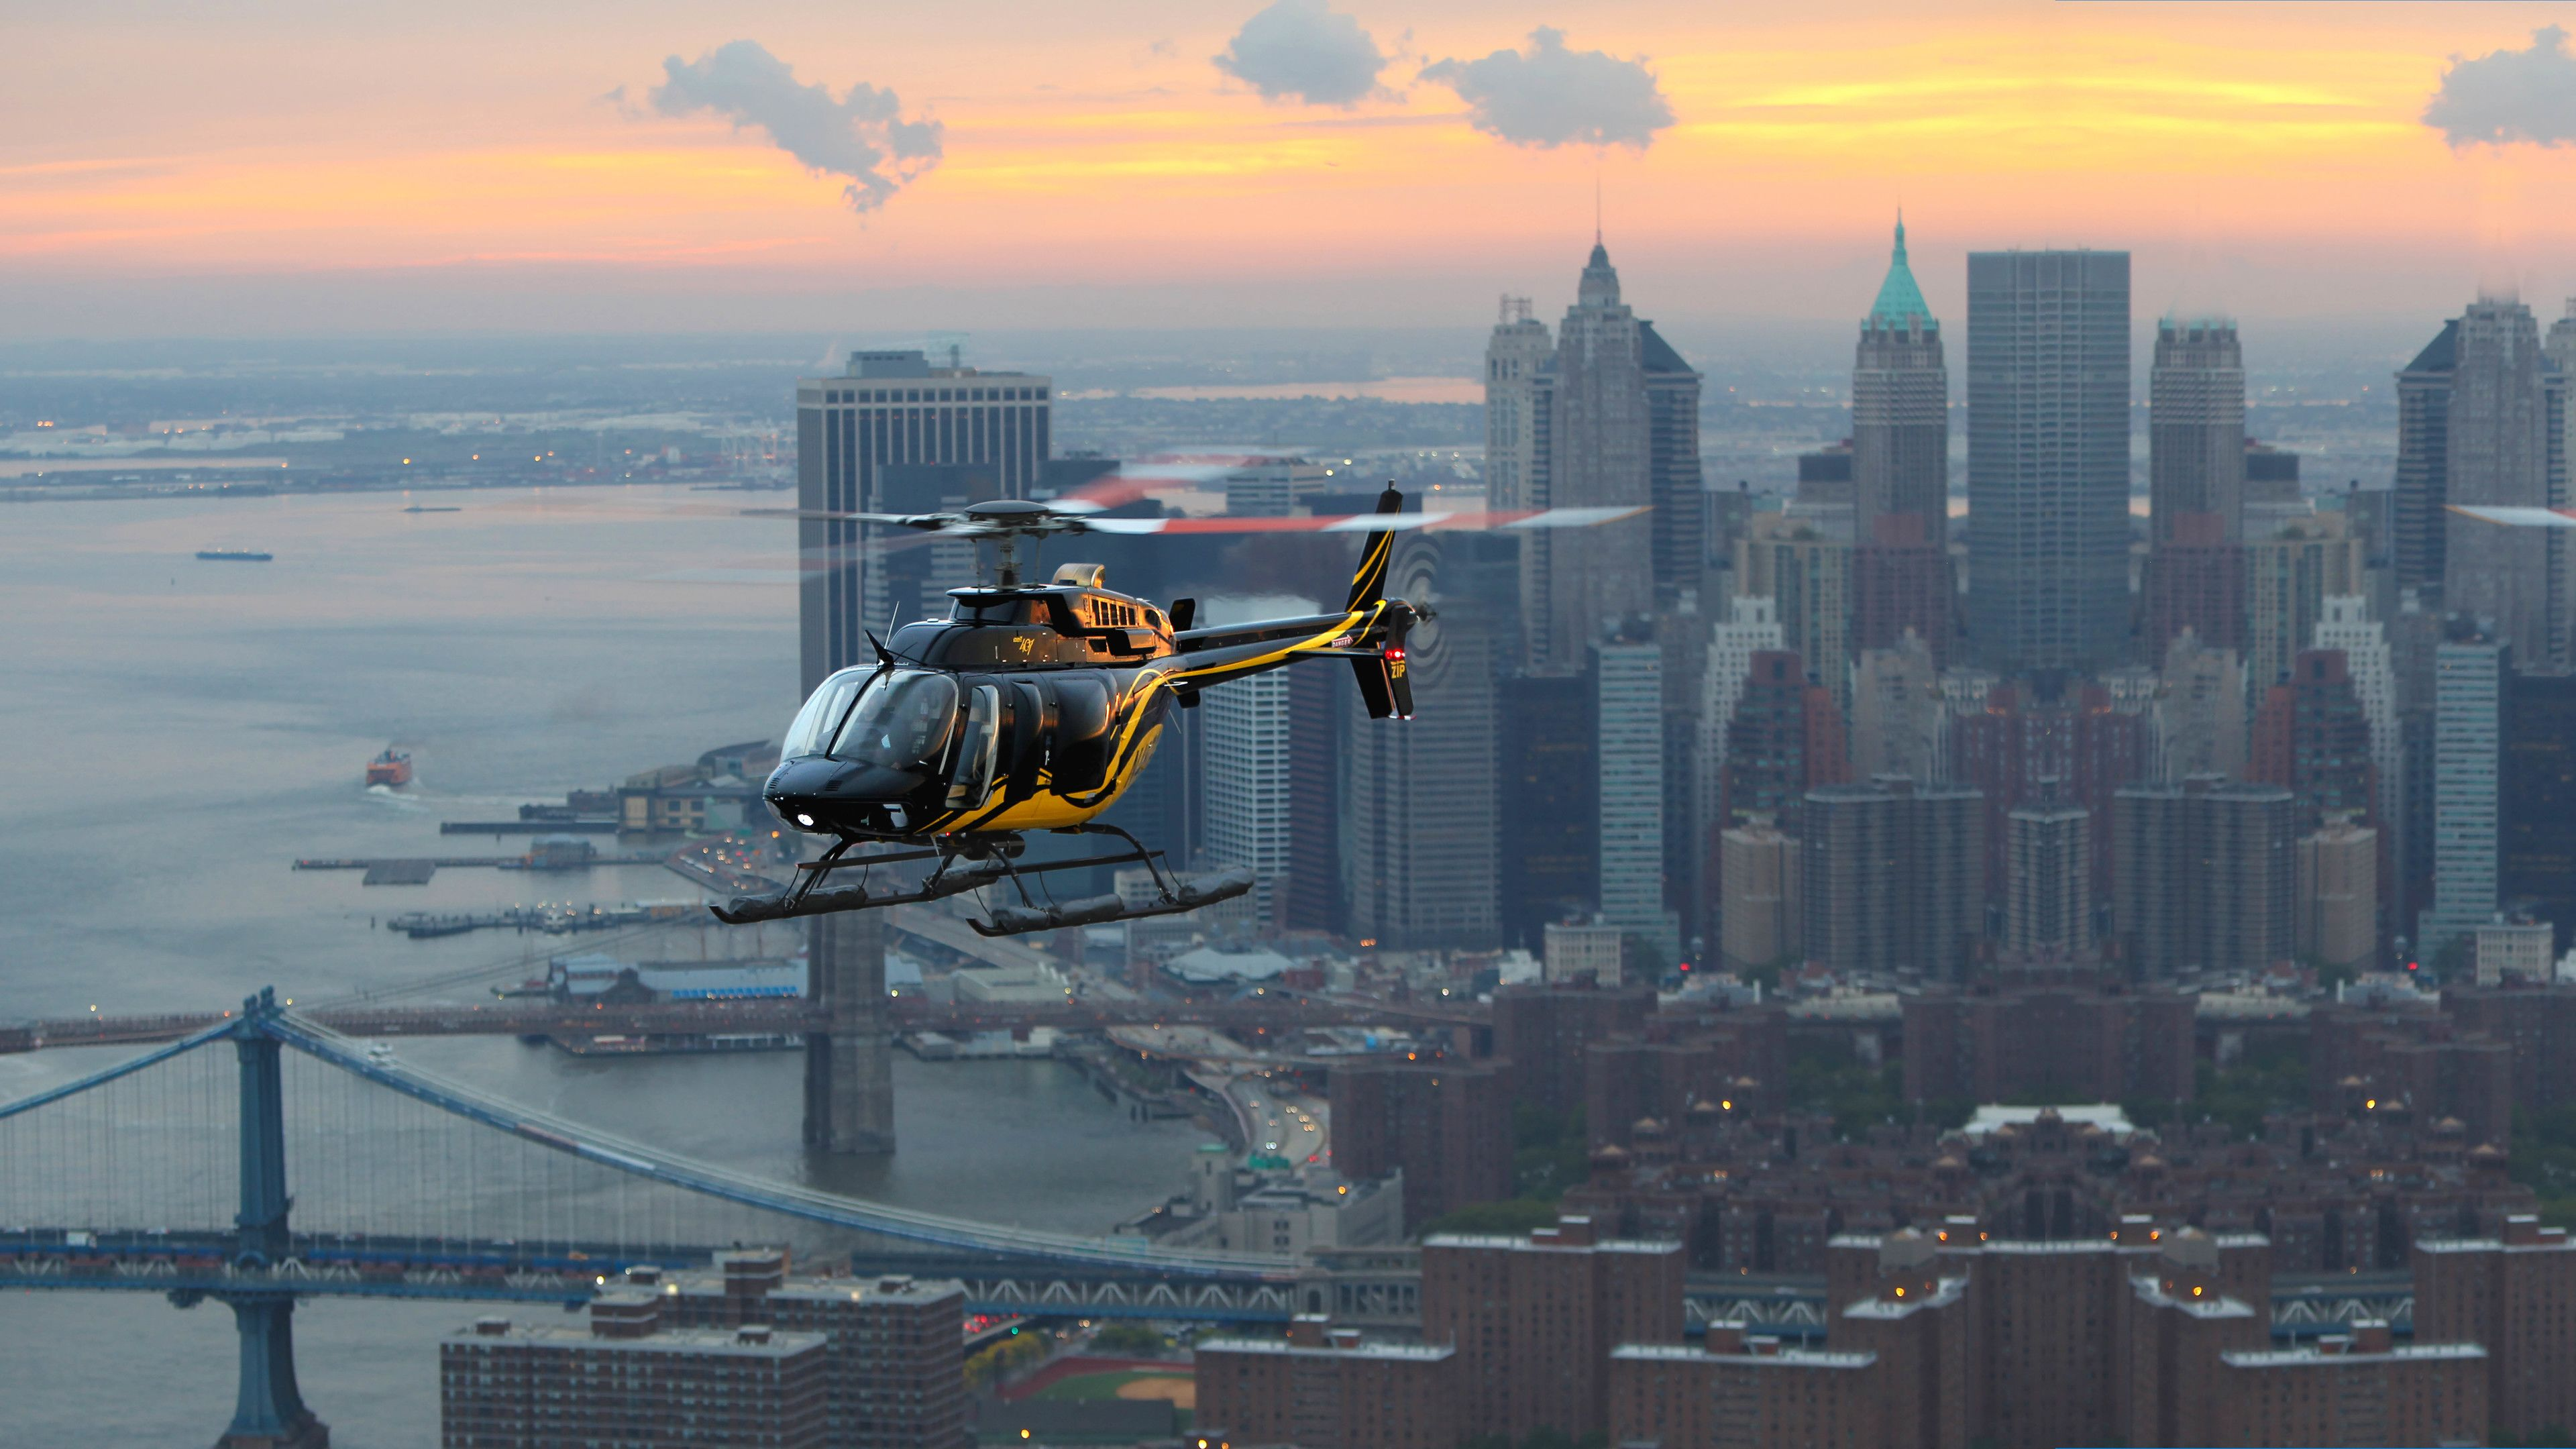 Helicopter flying over city at sunset.